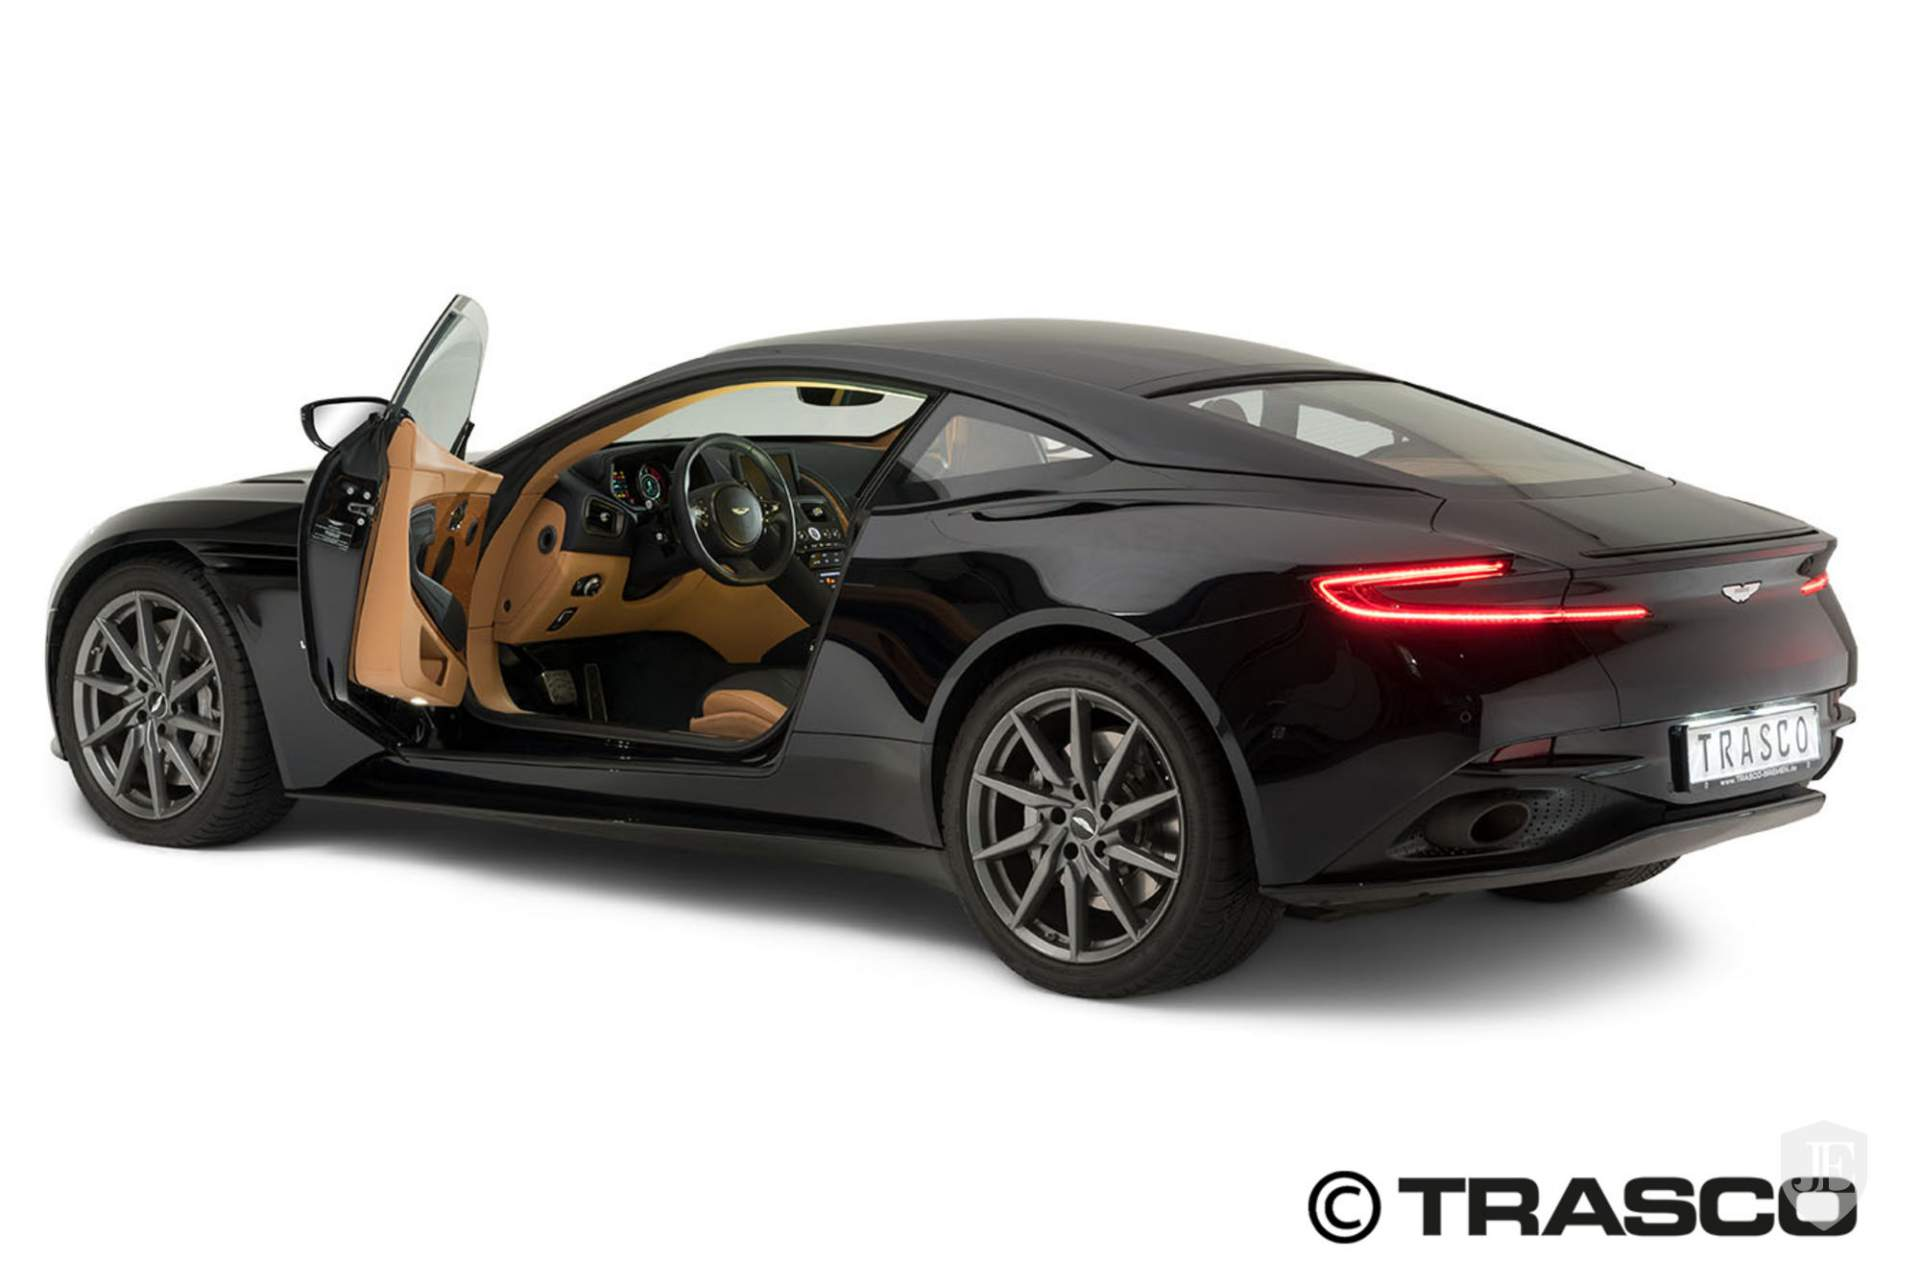 Armored Aston Martin DB11 by Trasco (3)